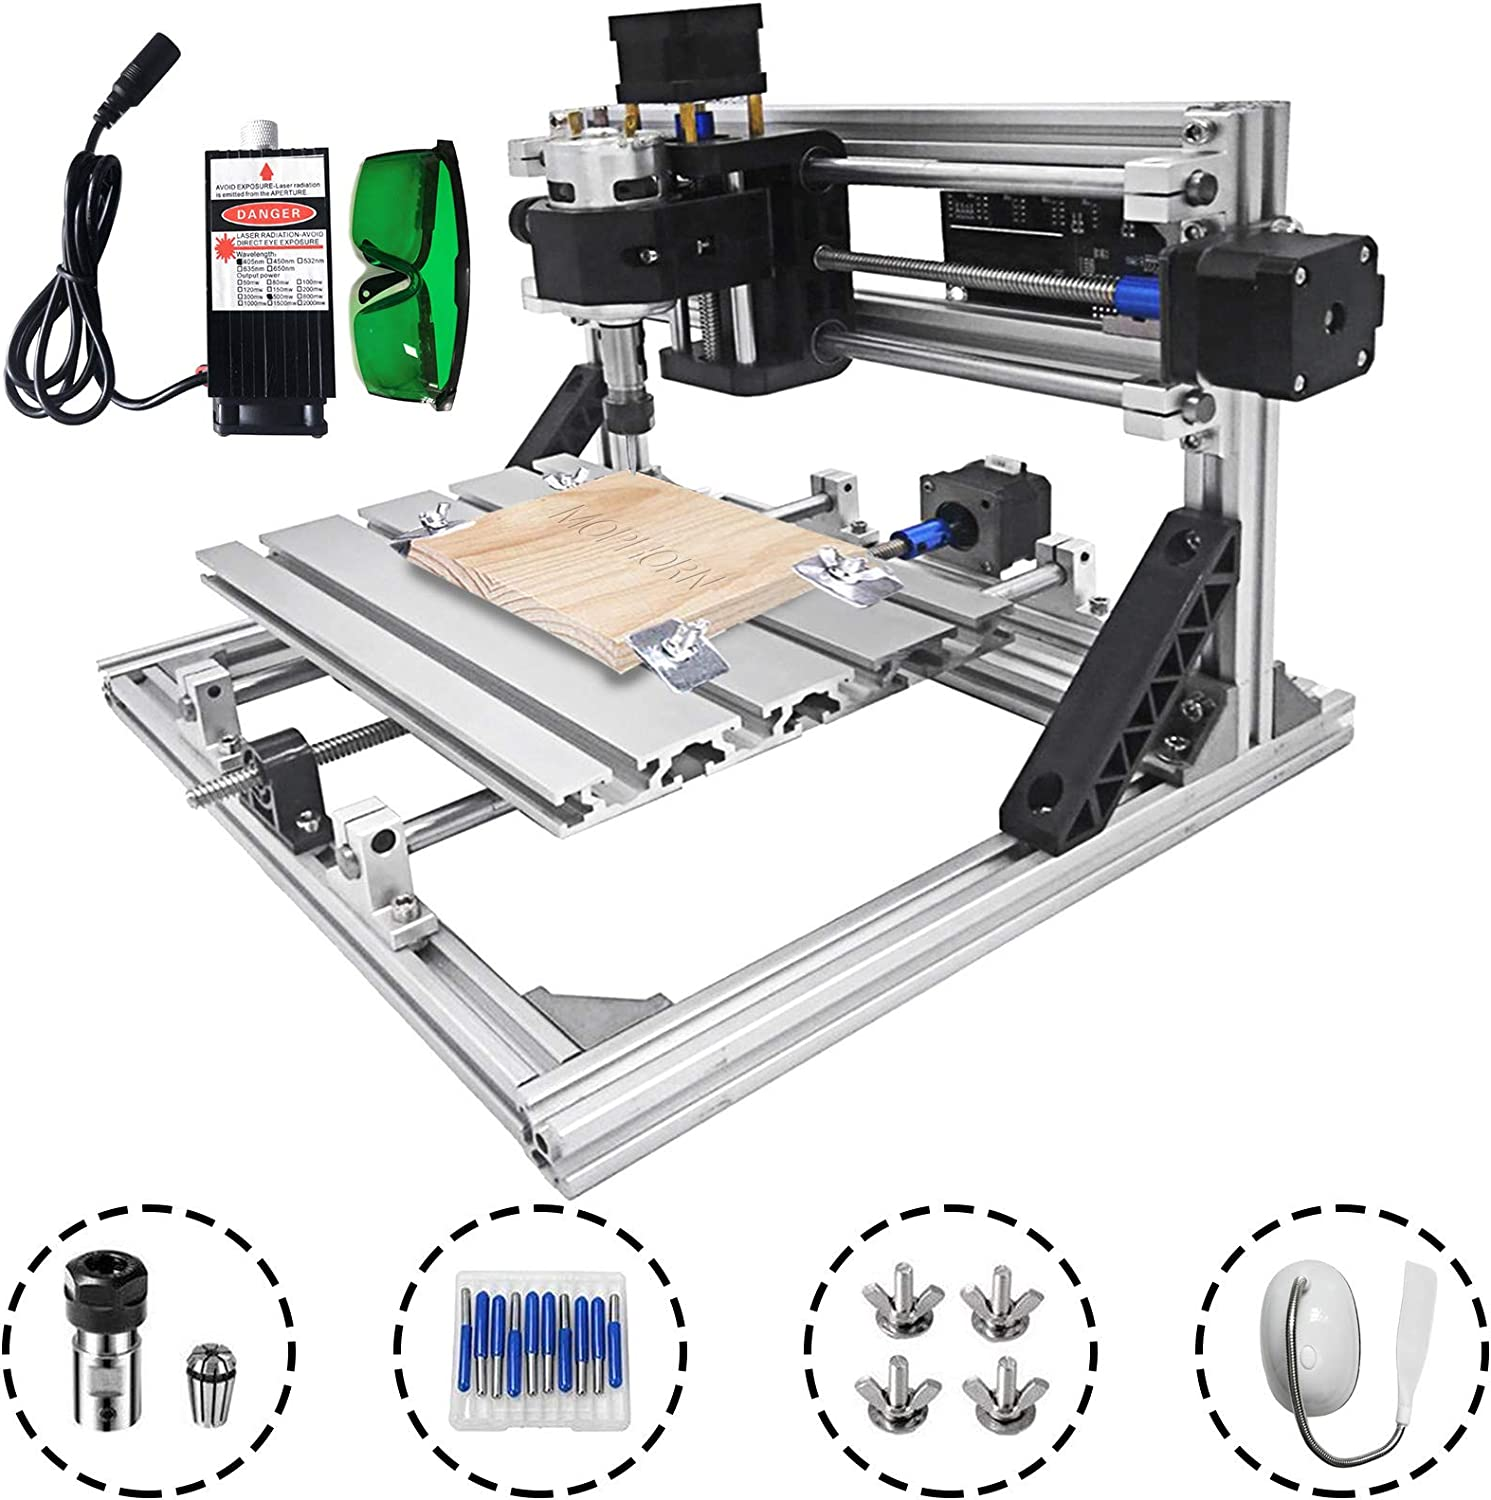 Mophorn Cnc Machine 2418 Grbl Control Cnc Router Kit 3 Axis Pcb Laser Engraver 240X180X40Mm With 500mW Laser Head Module and Lamp